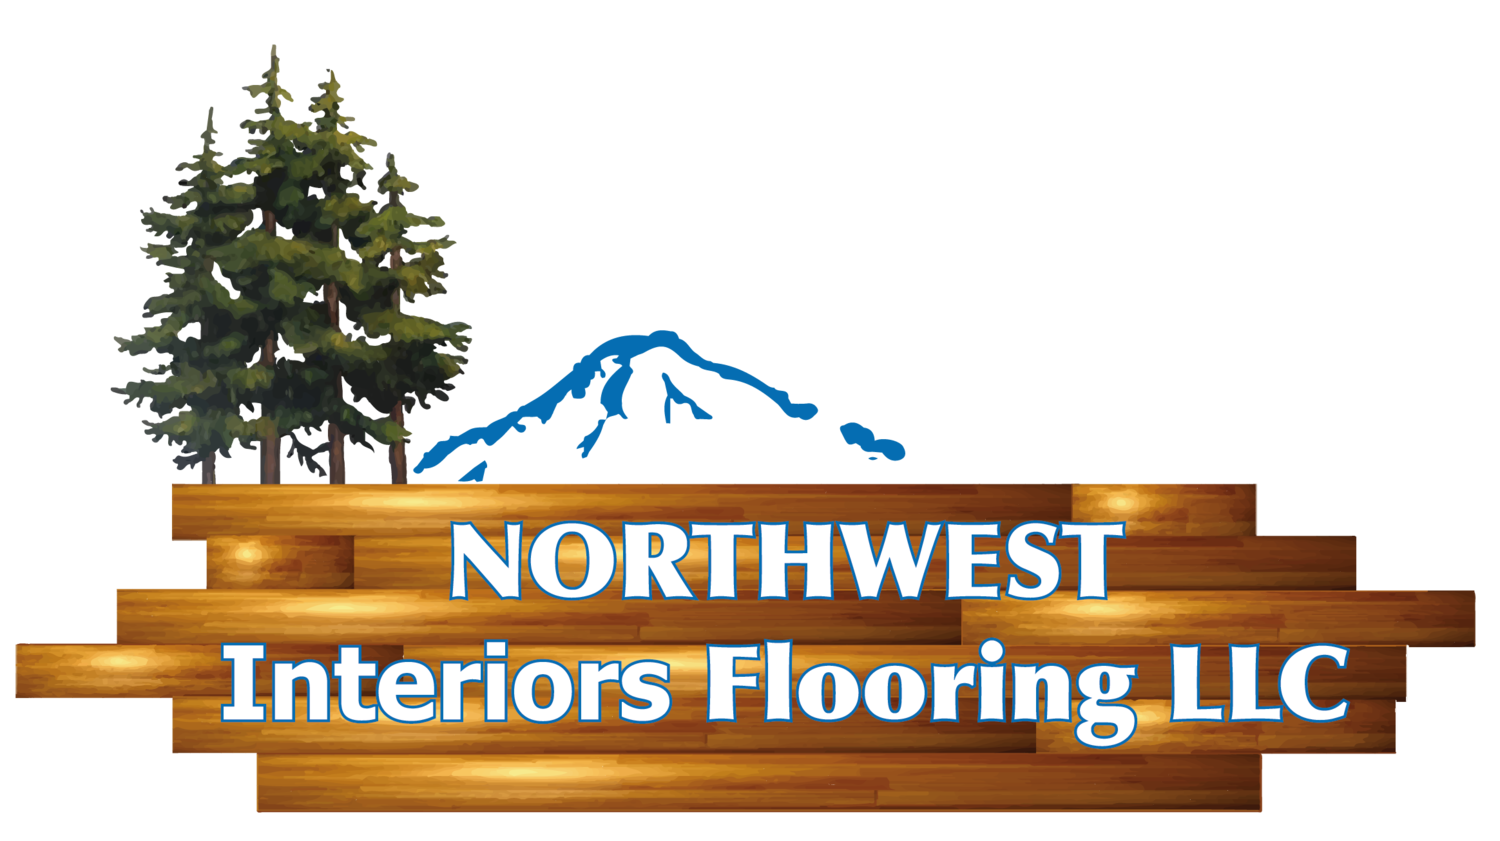 NW Interiors Flooring, LLC